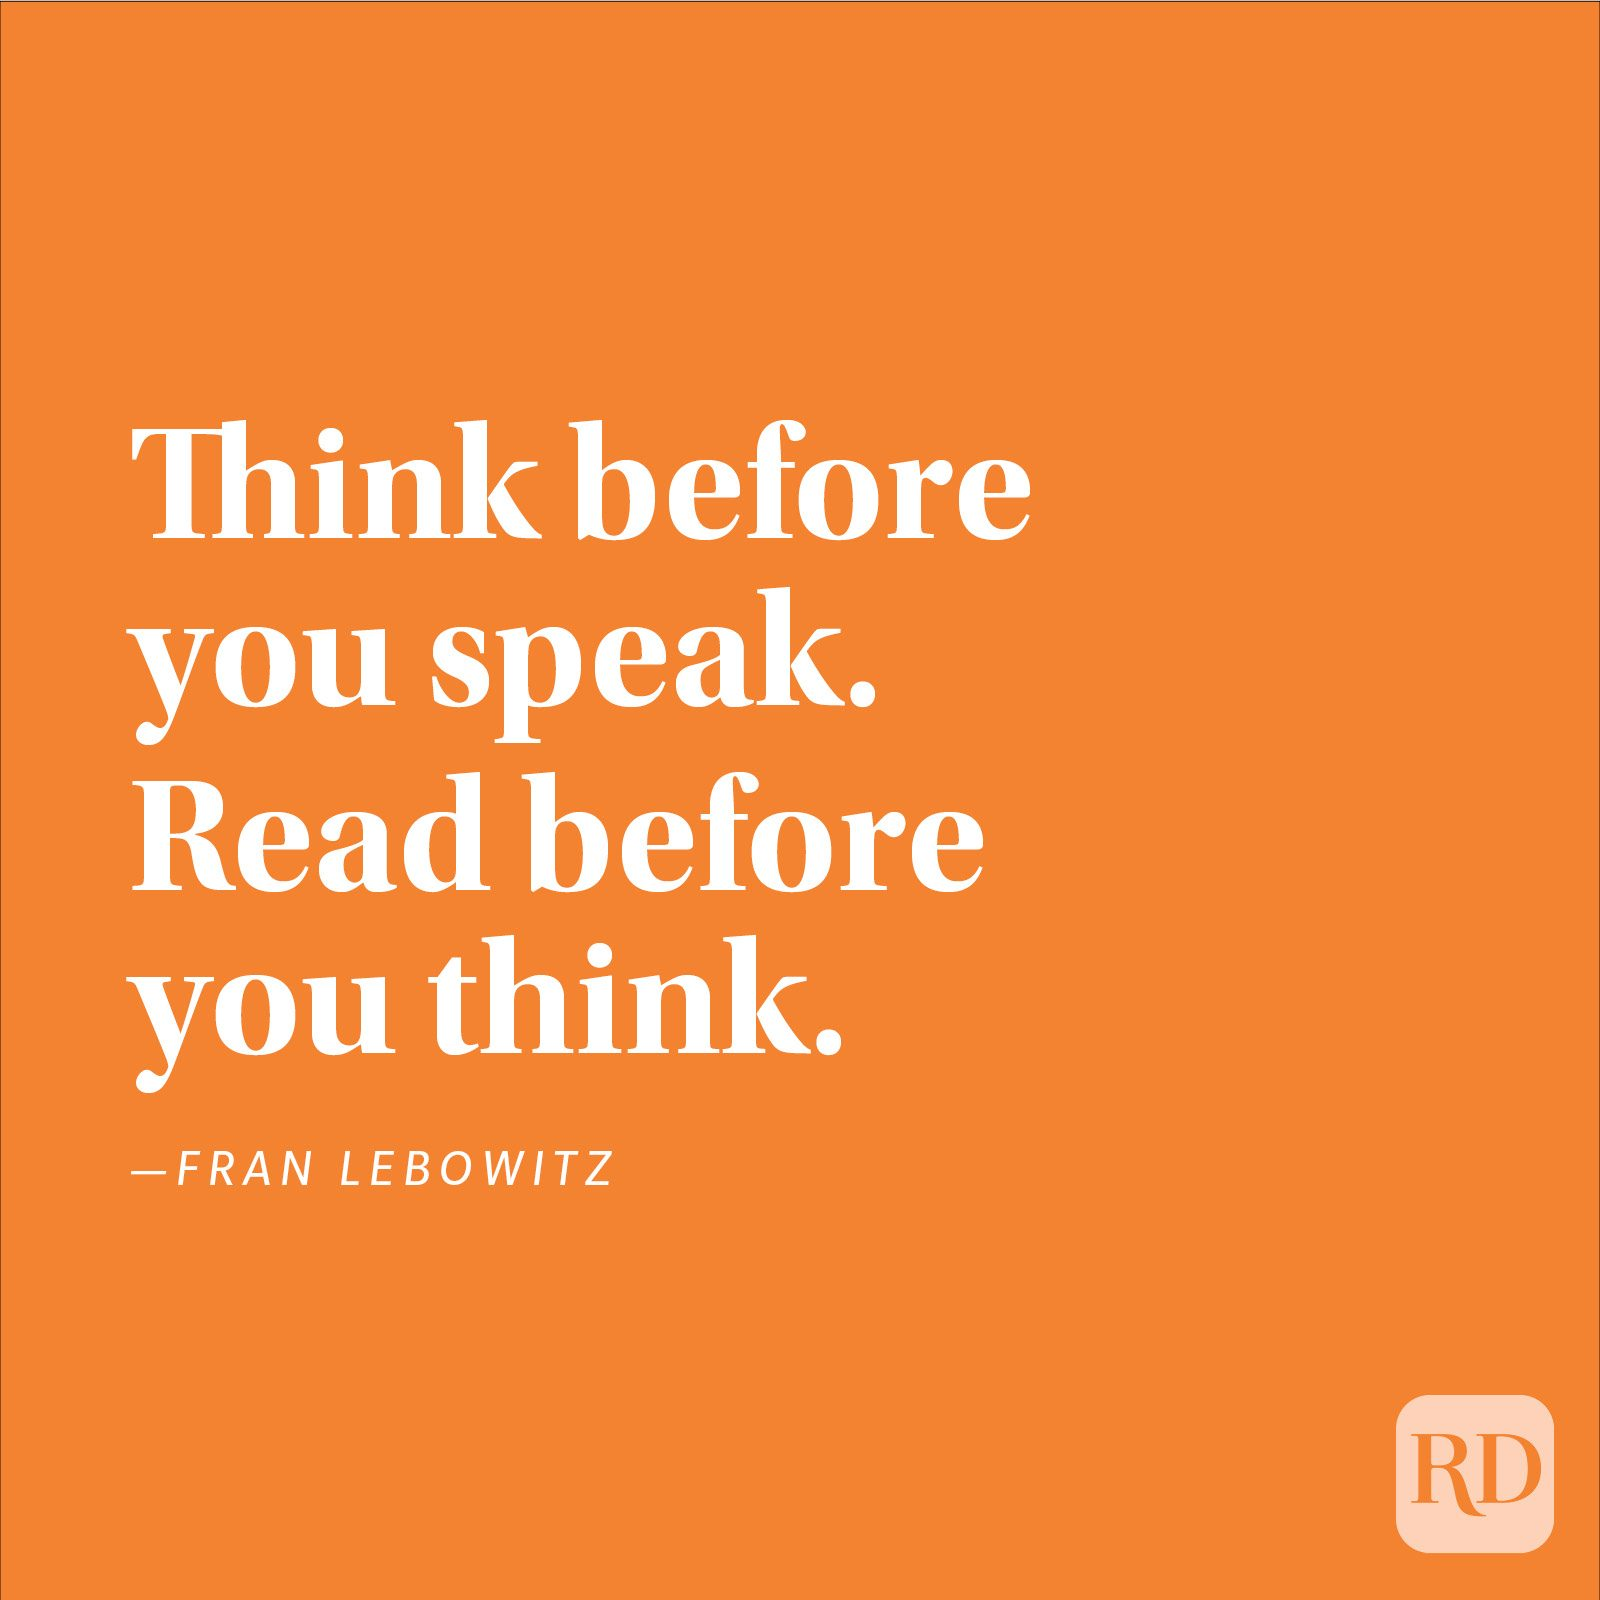 """Think before you speak. Read before you think."" —Fran Lebowitz"